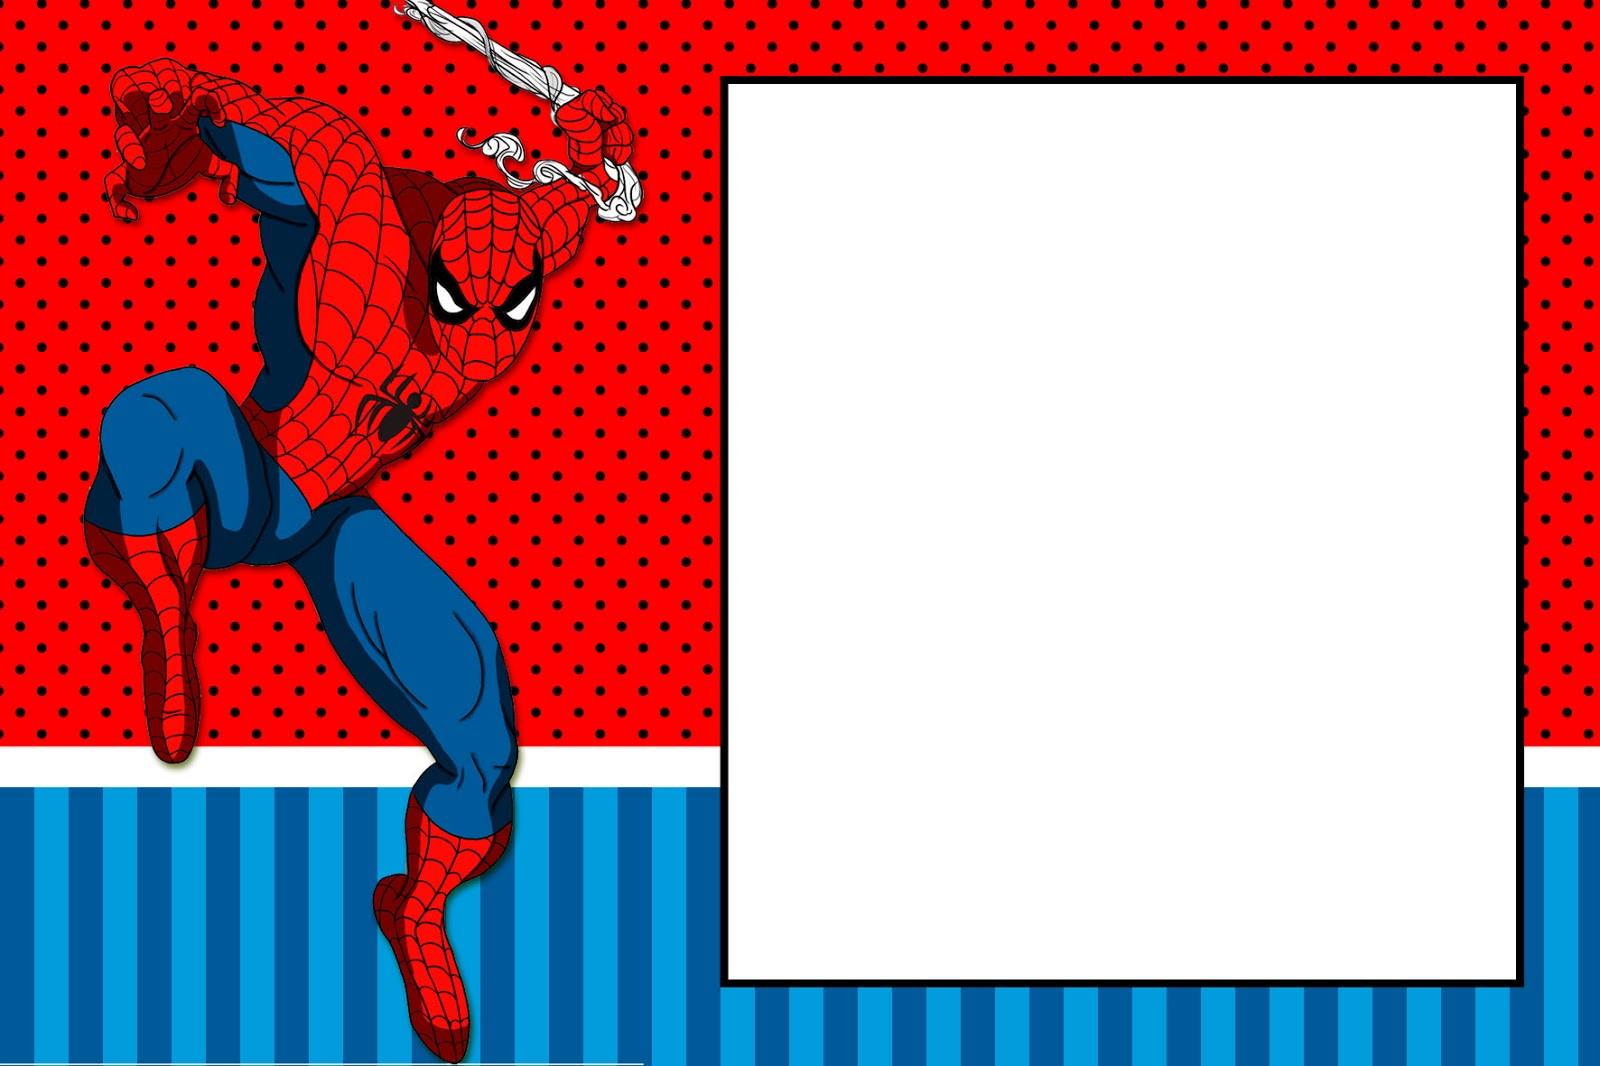 Fiesta de spiderman invitaciones para imprimir gratis for Paginas decoracion online